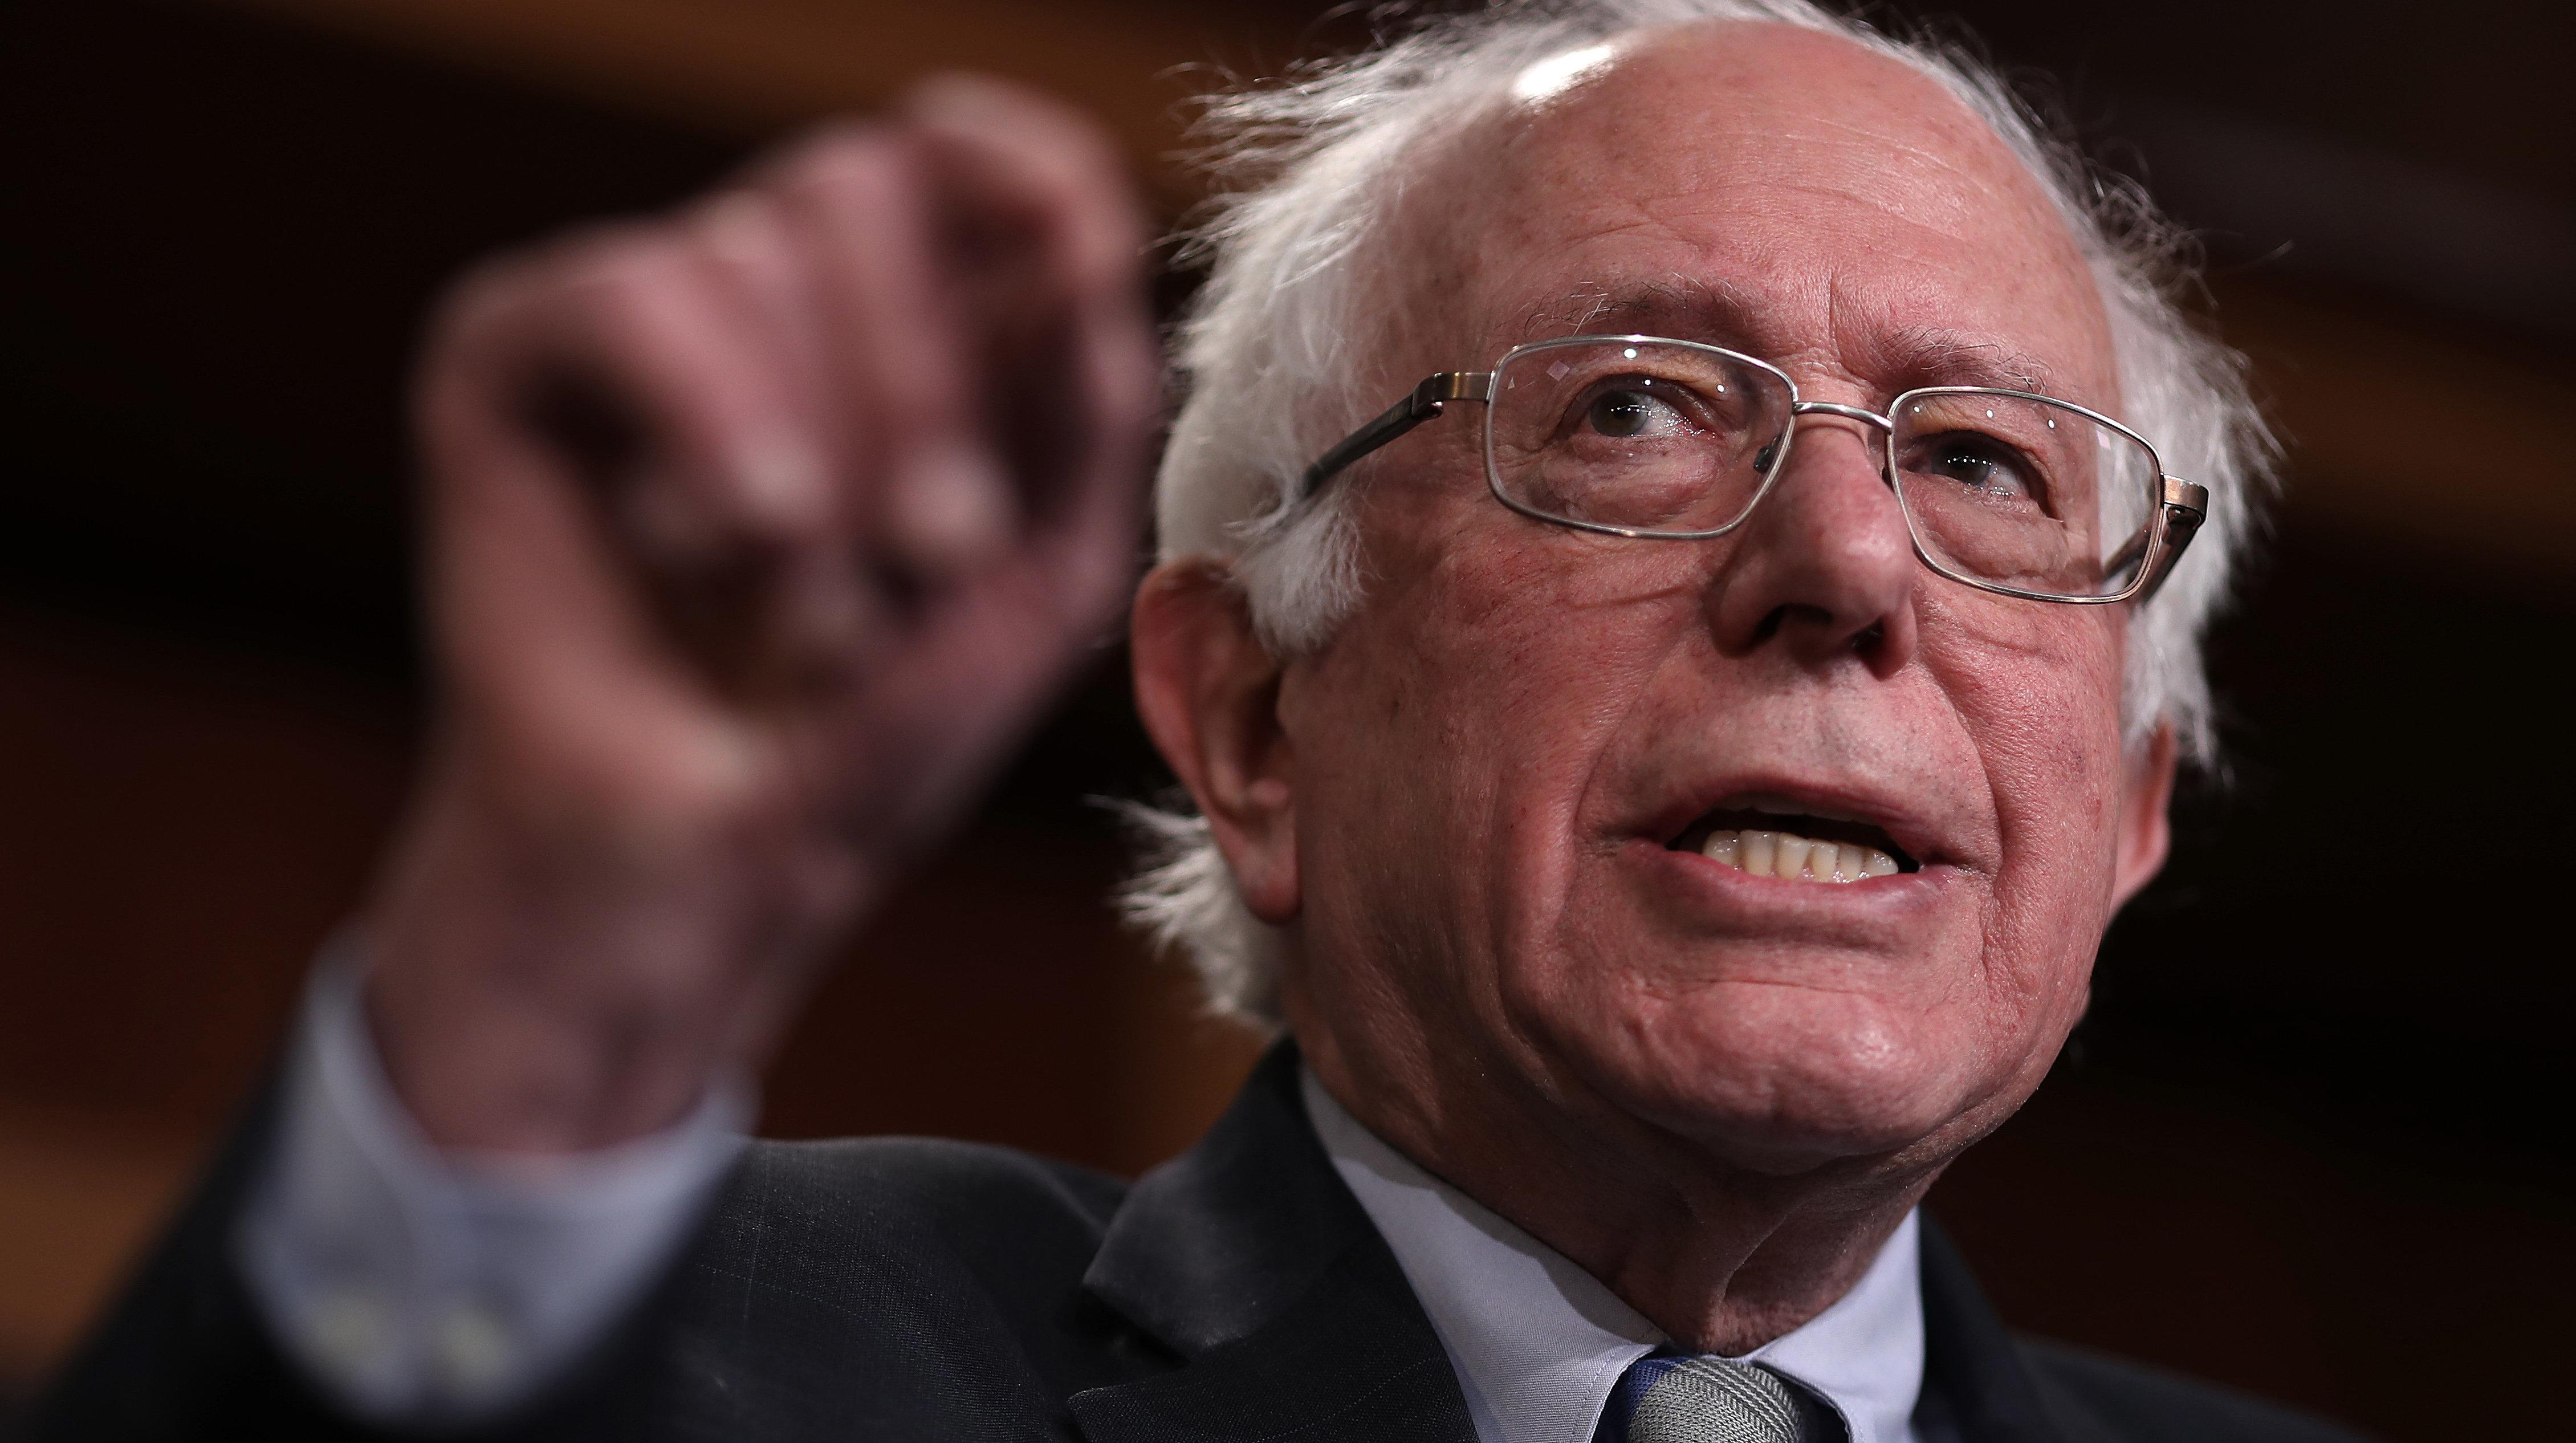 Bernie Sanders Uses Rebuttal To Fact-Check Trump's State Of The Union Speech